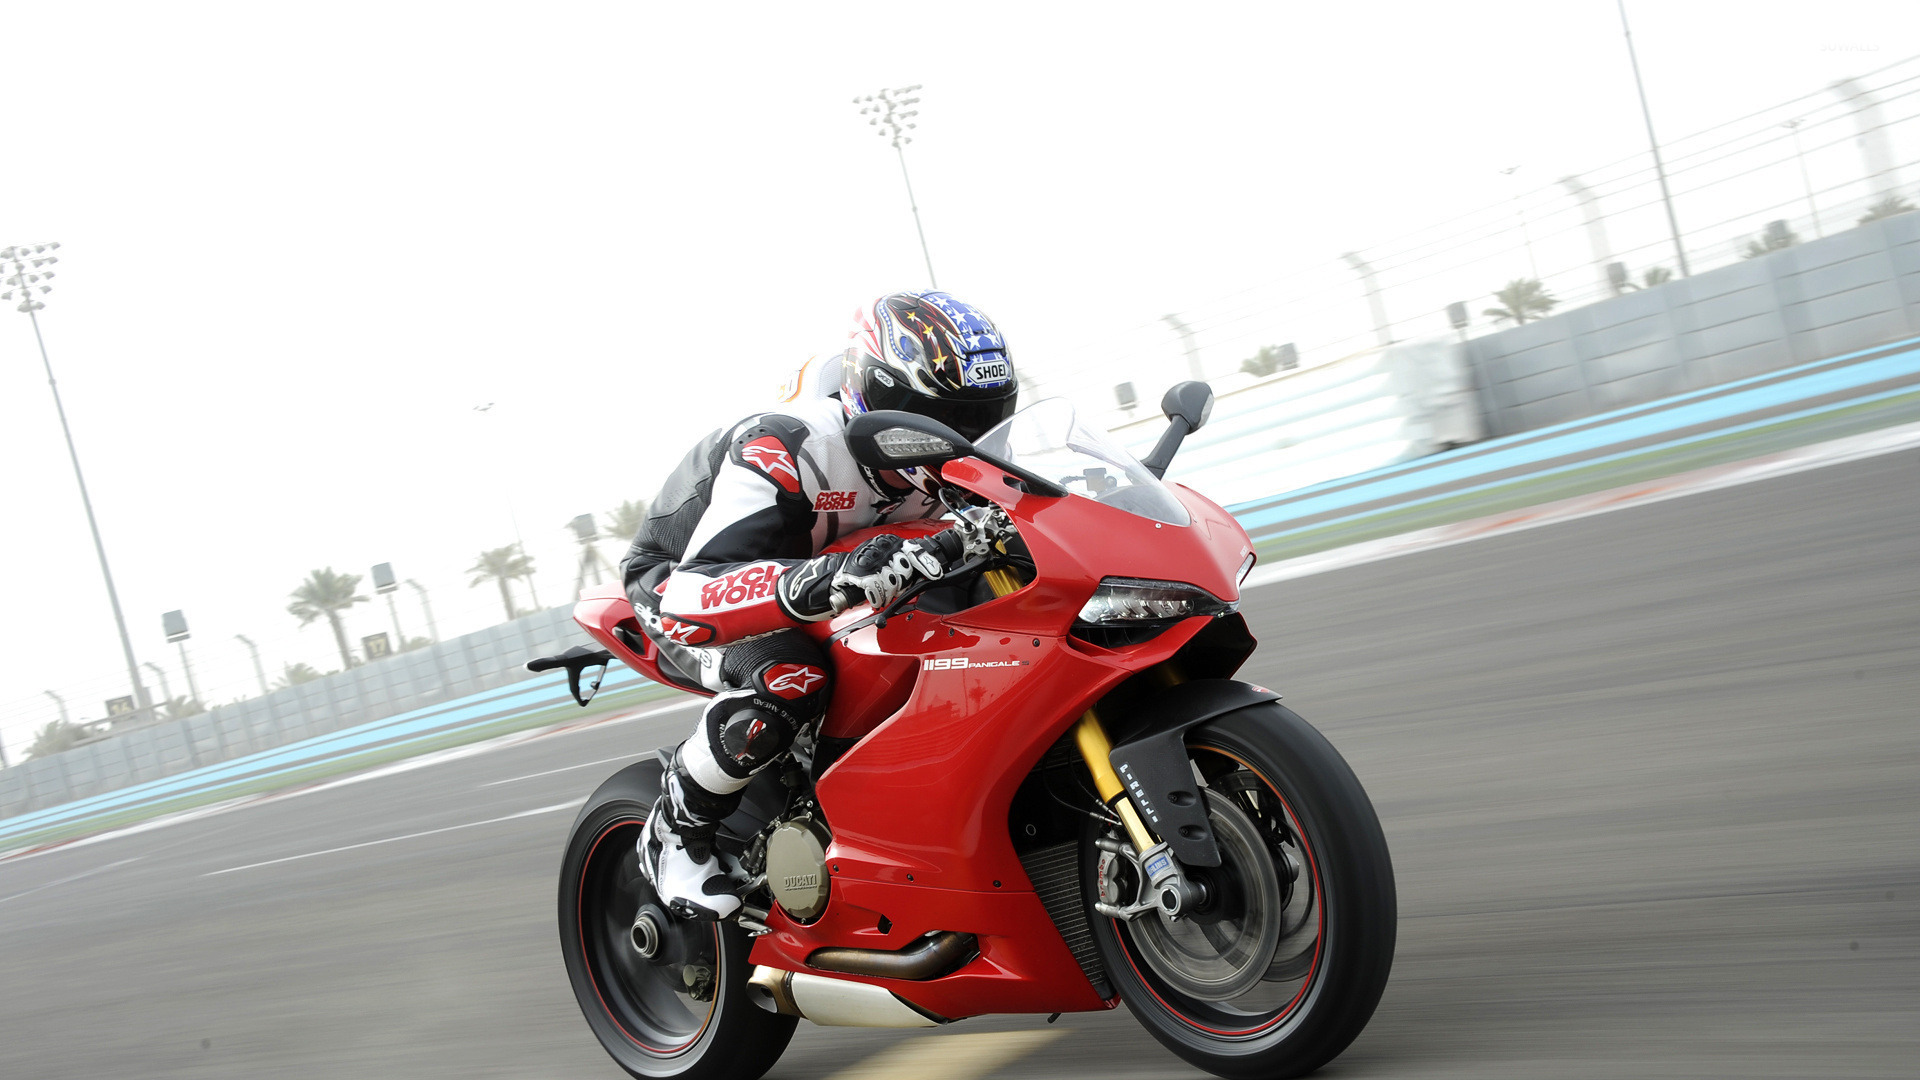 2015 red ducati 1199 panigale side view wallpaper - motorcycle